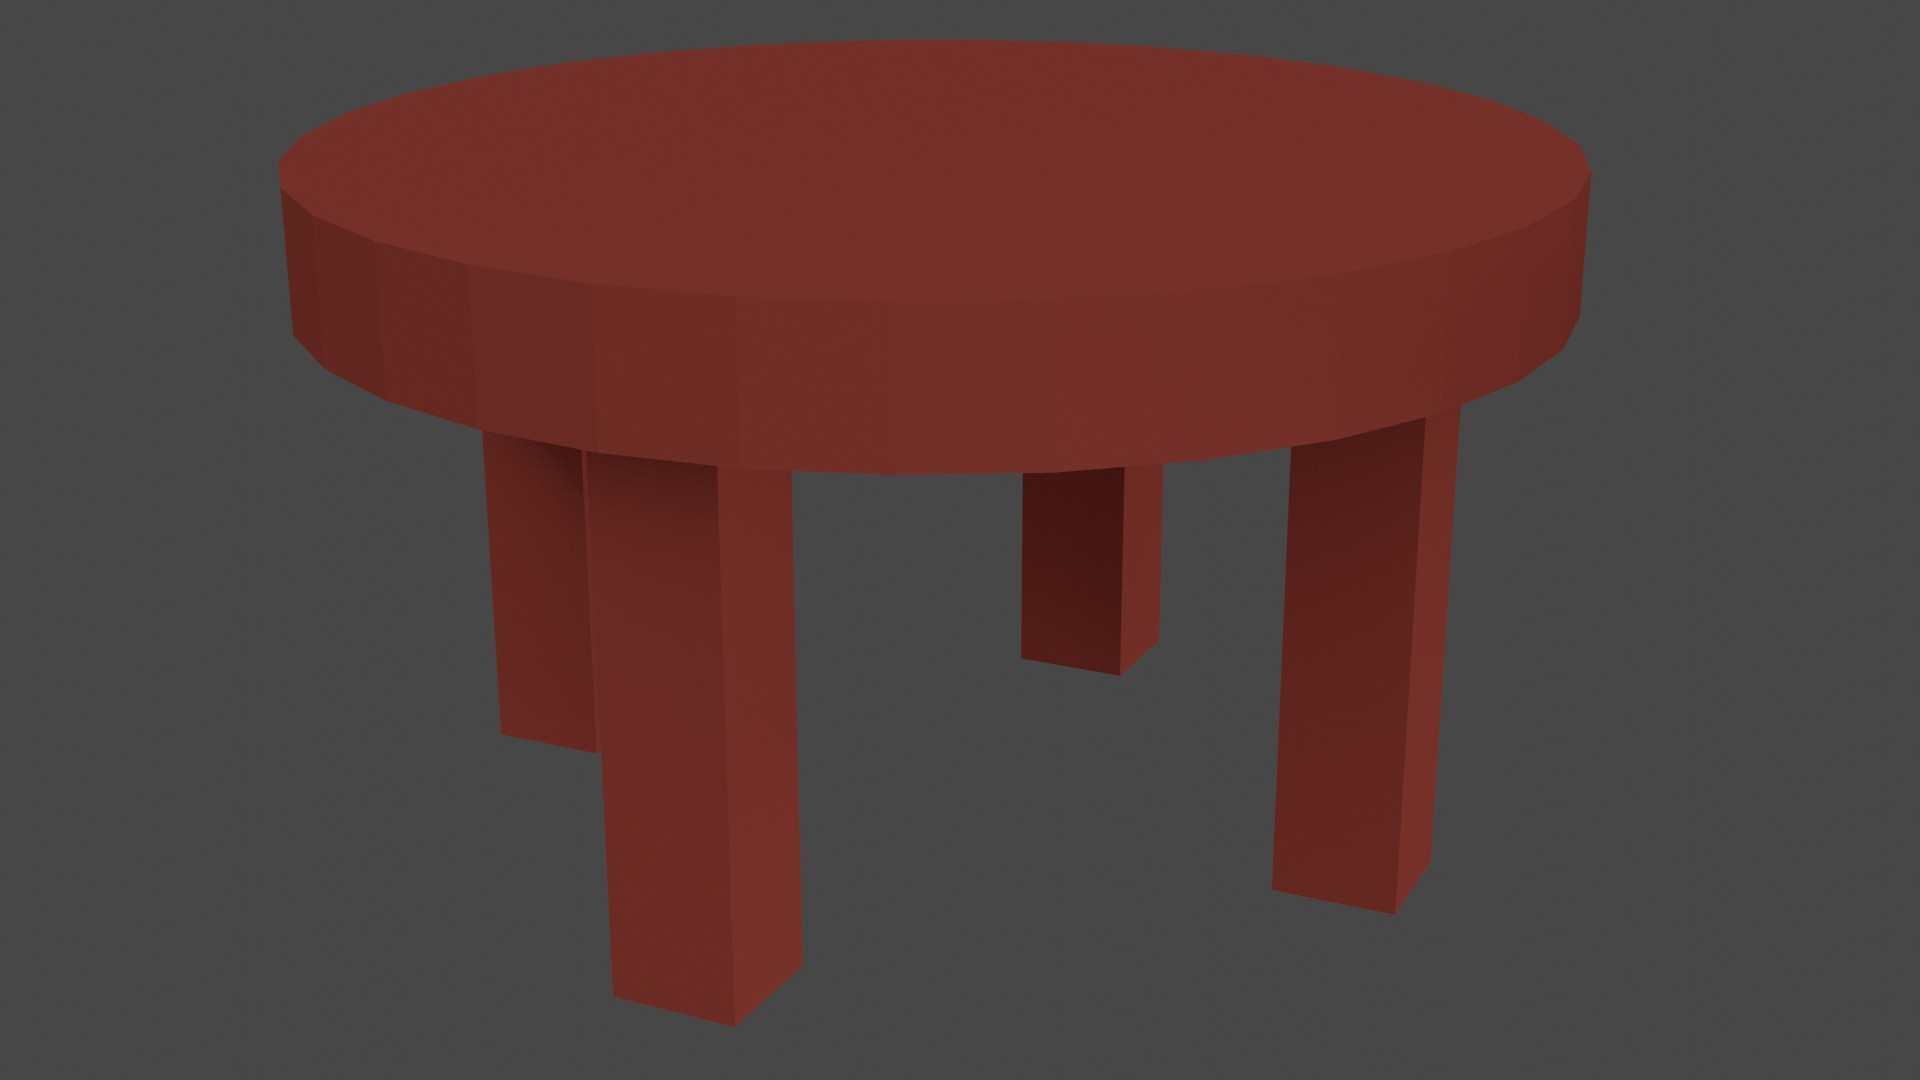 Low Poly Red Furniture 8